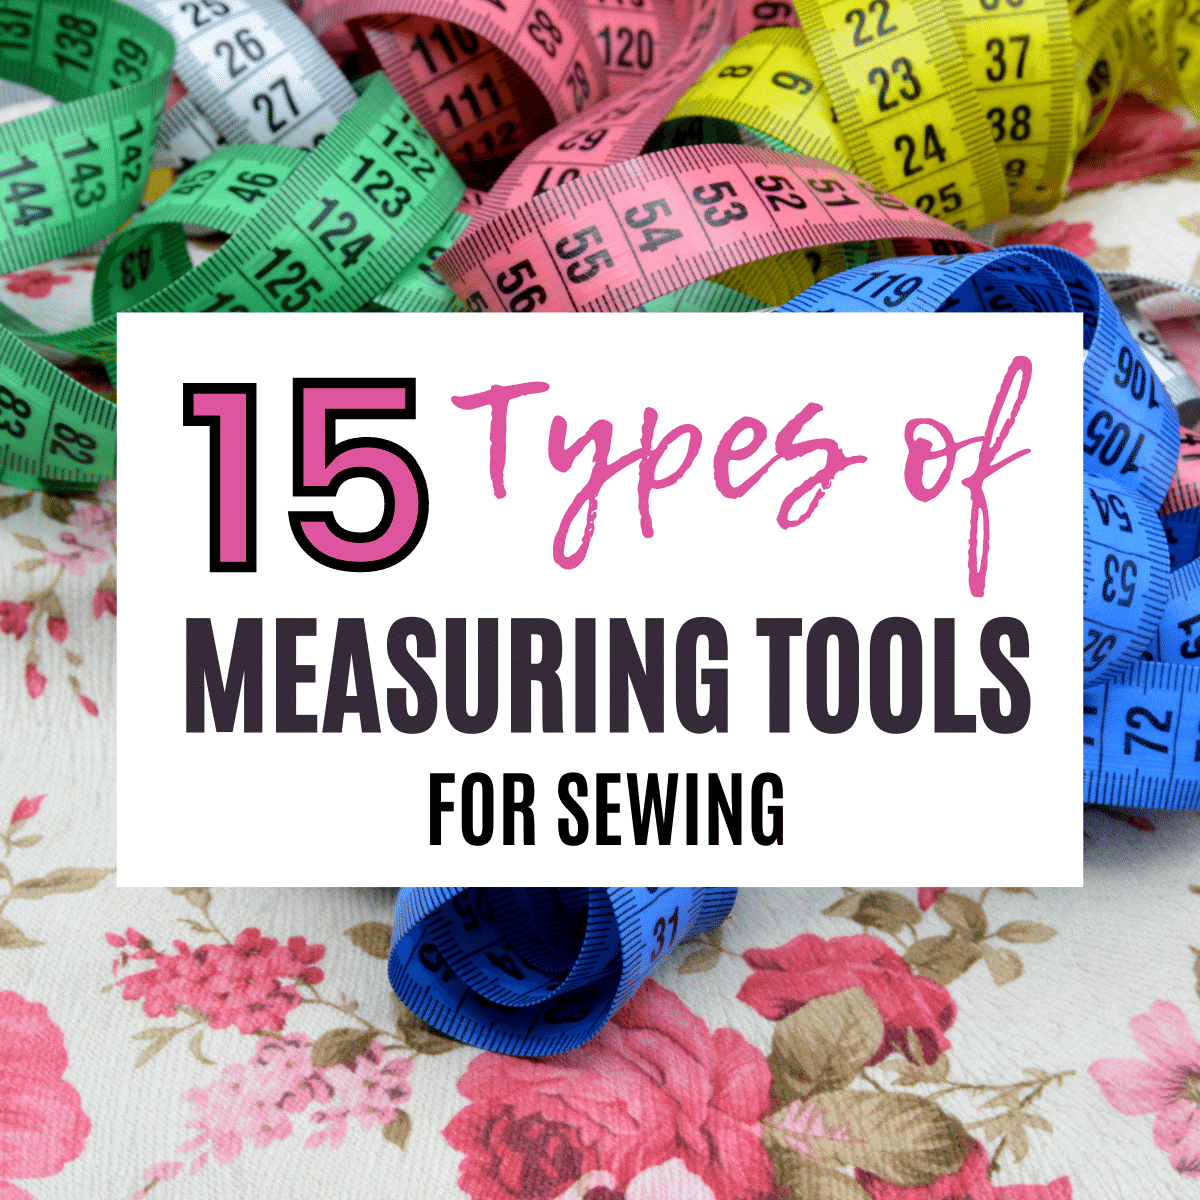 15 Types of Measuring Tools in Sewing (Names & Pictures)